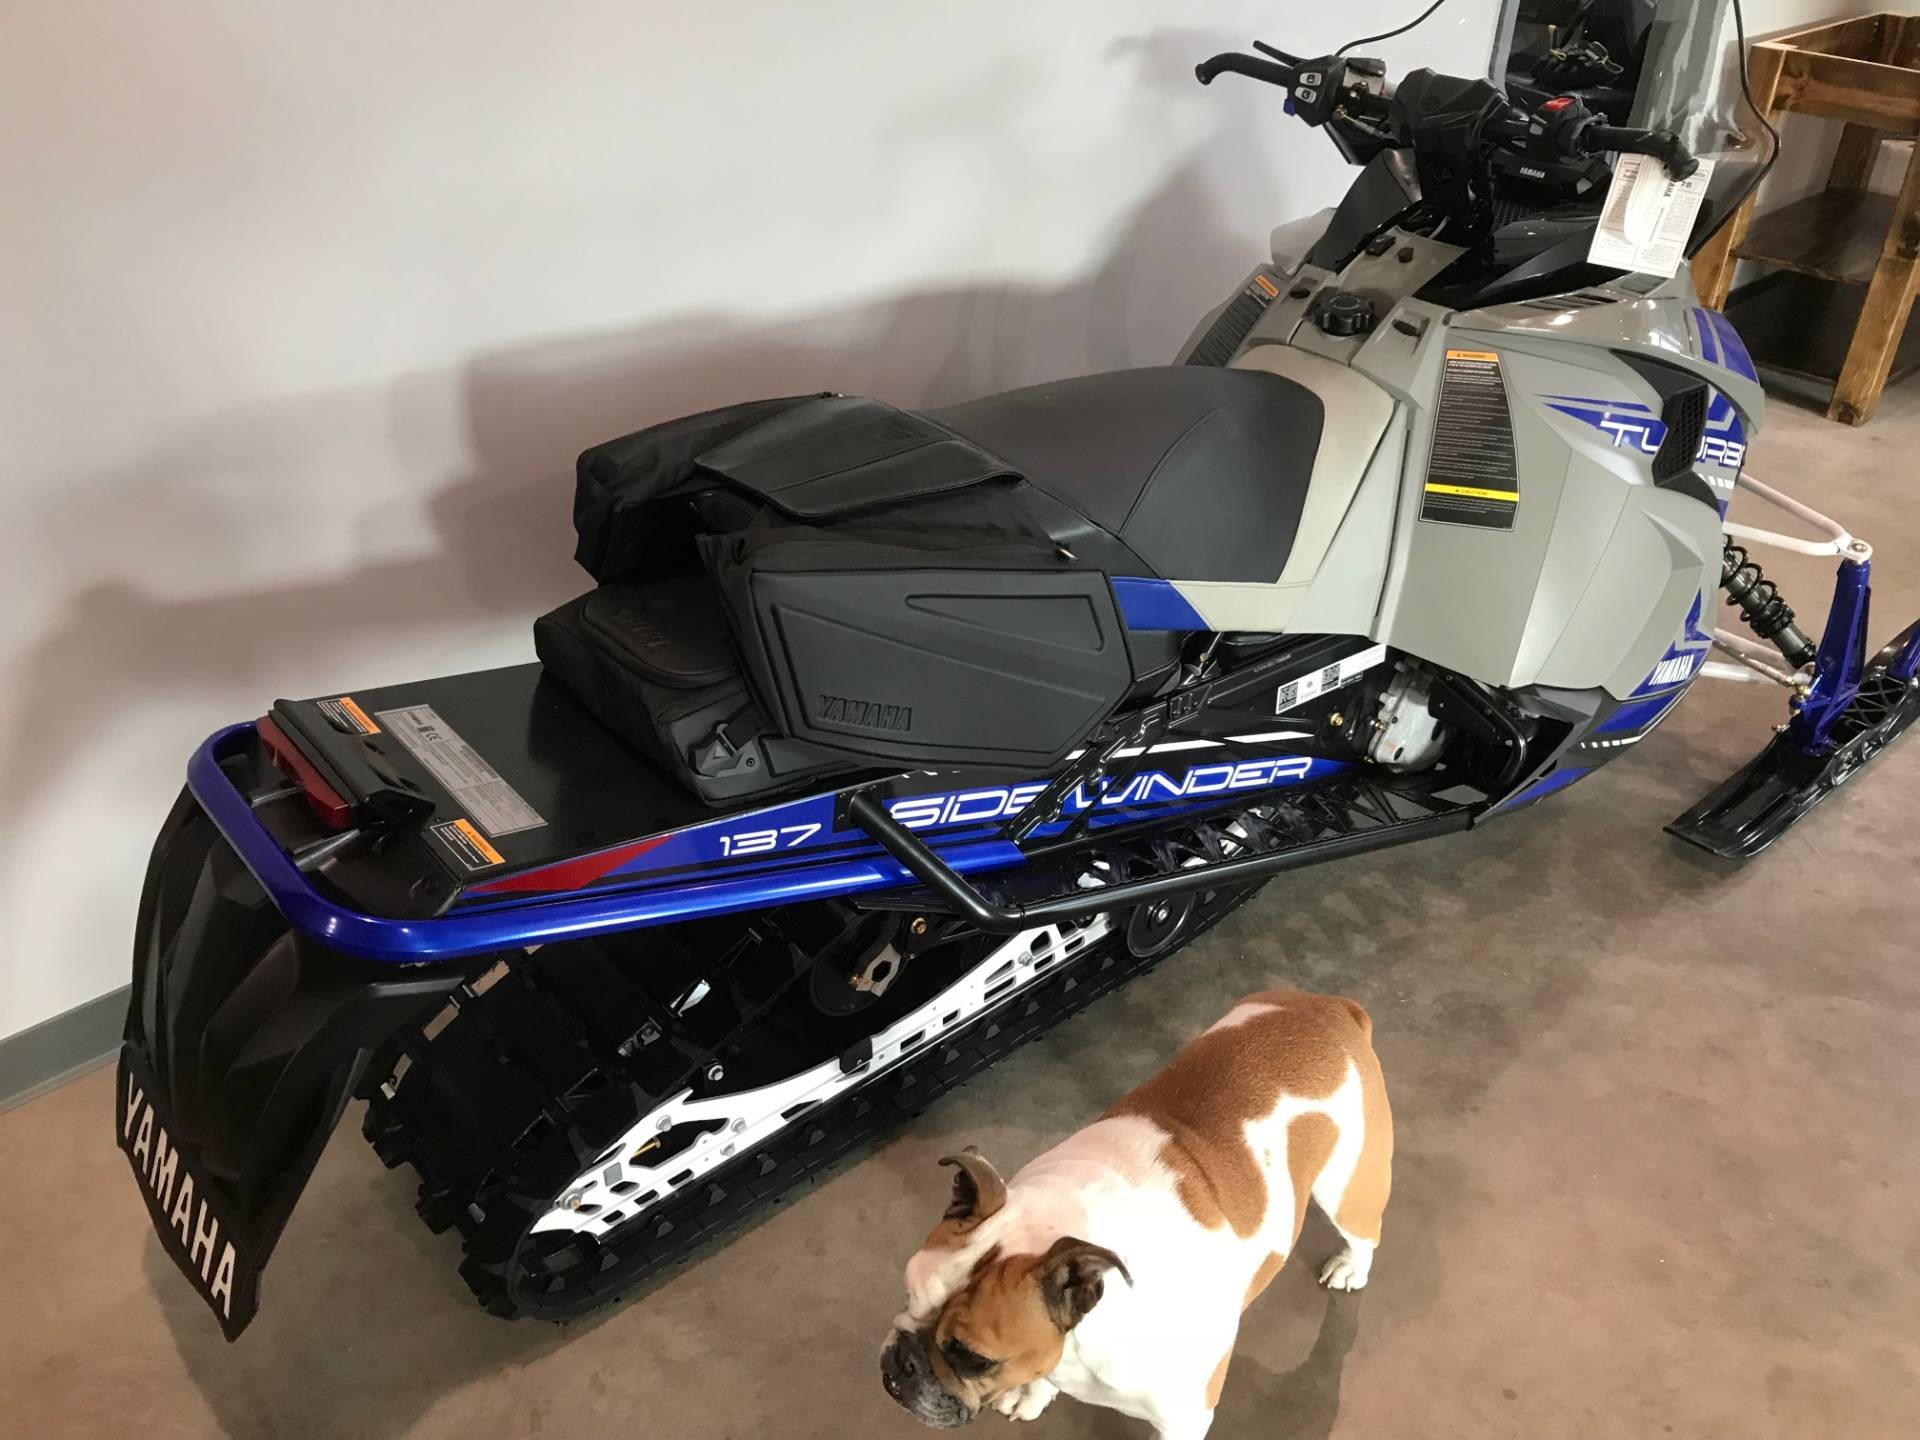 2018 Yamaha Sidewinder S-TX DX 137 in Hancock, Michigan - Photo 4